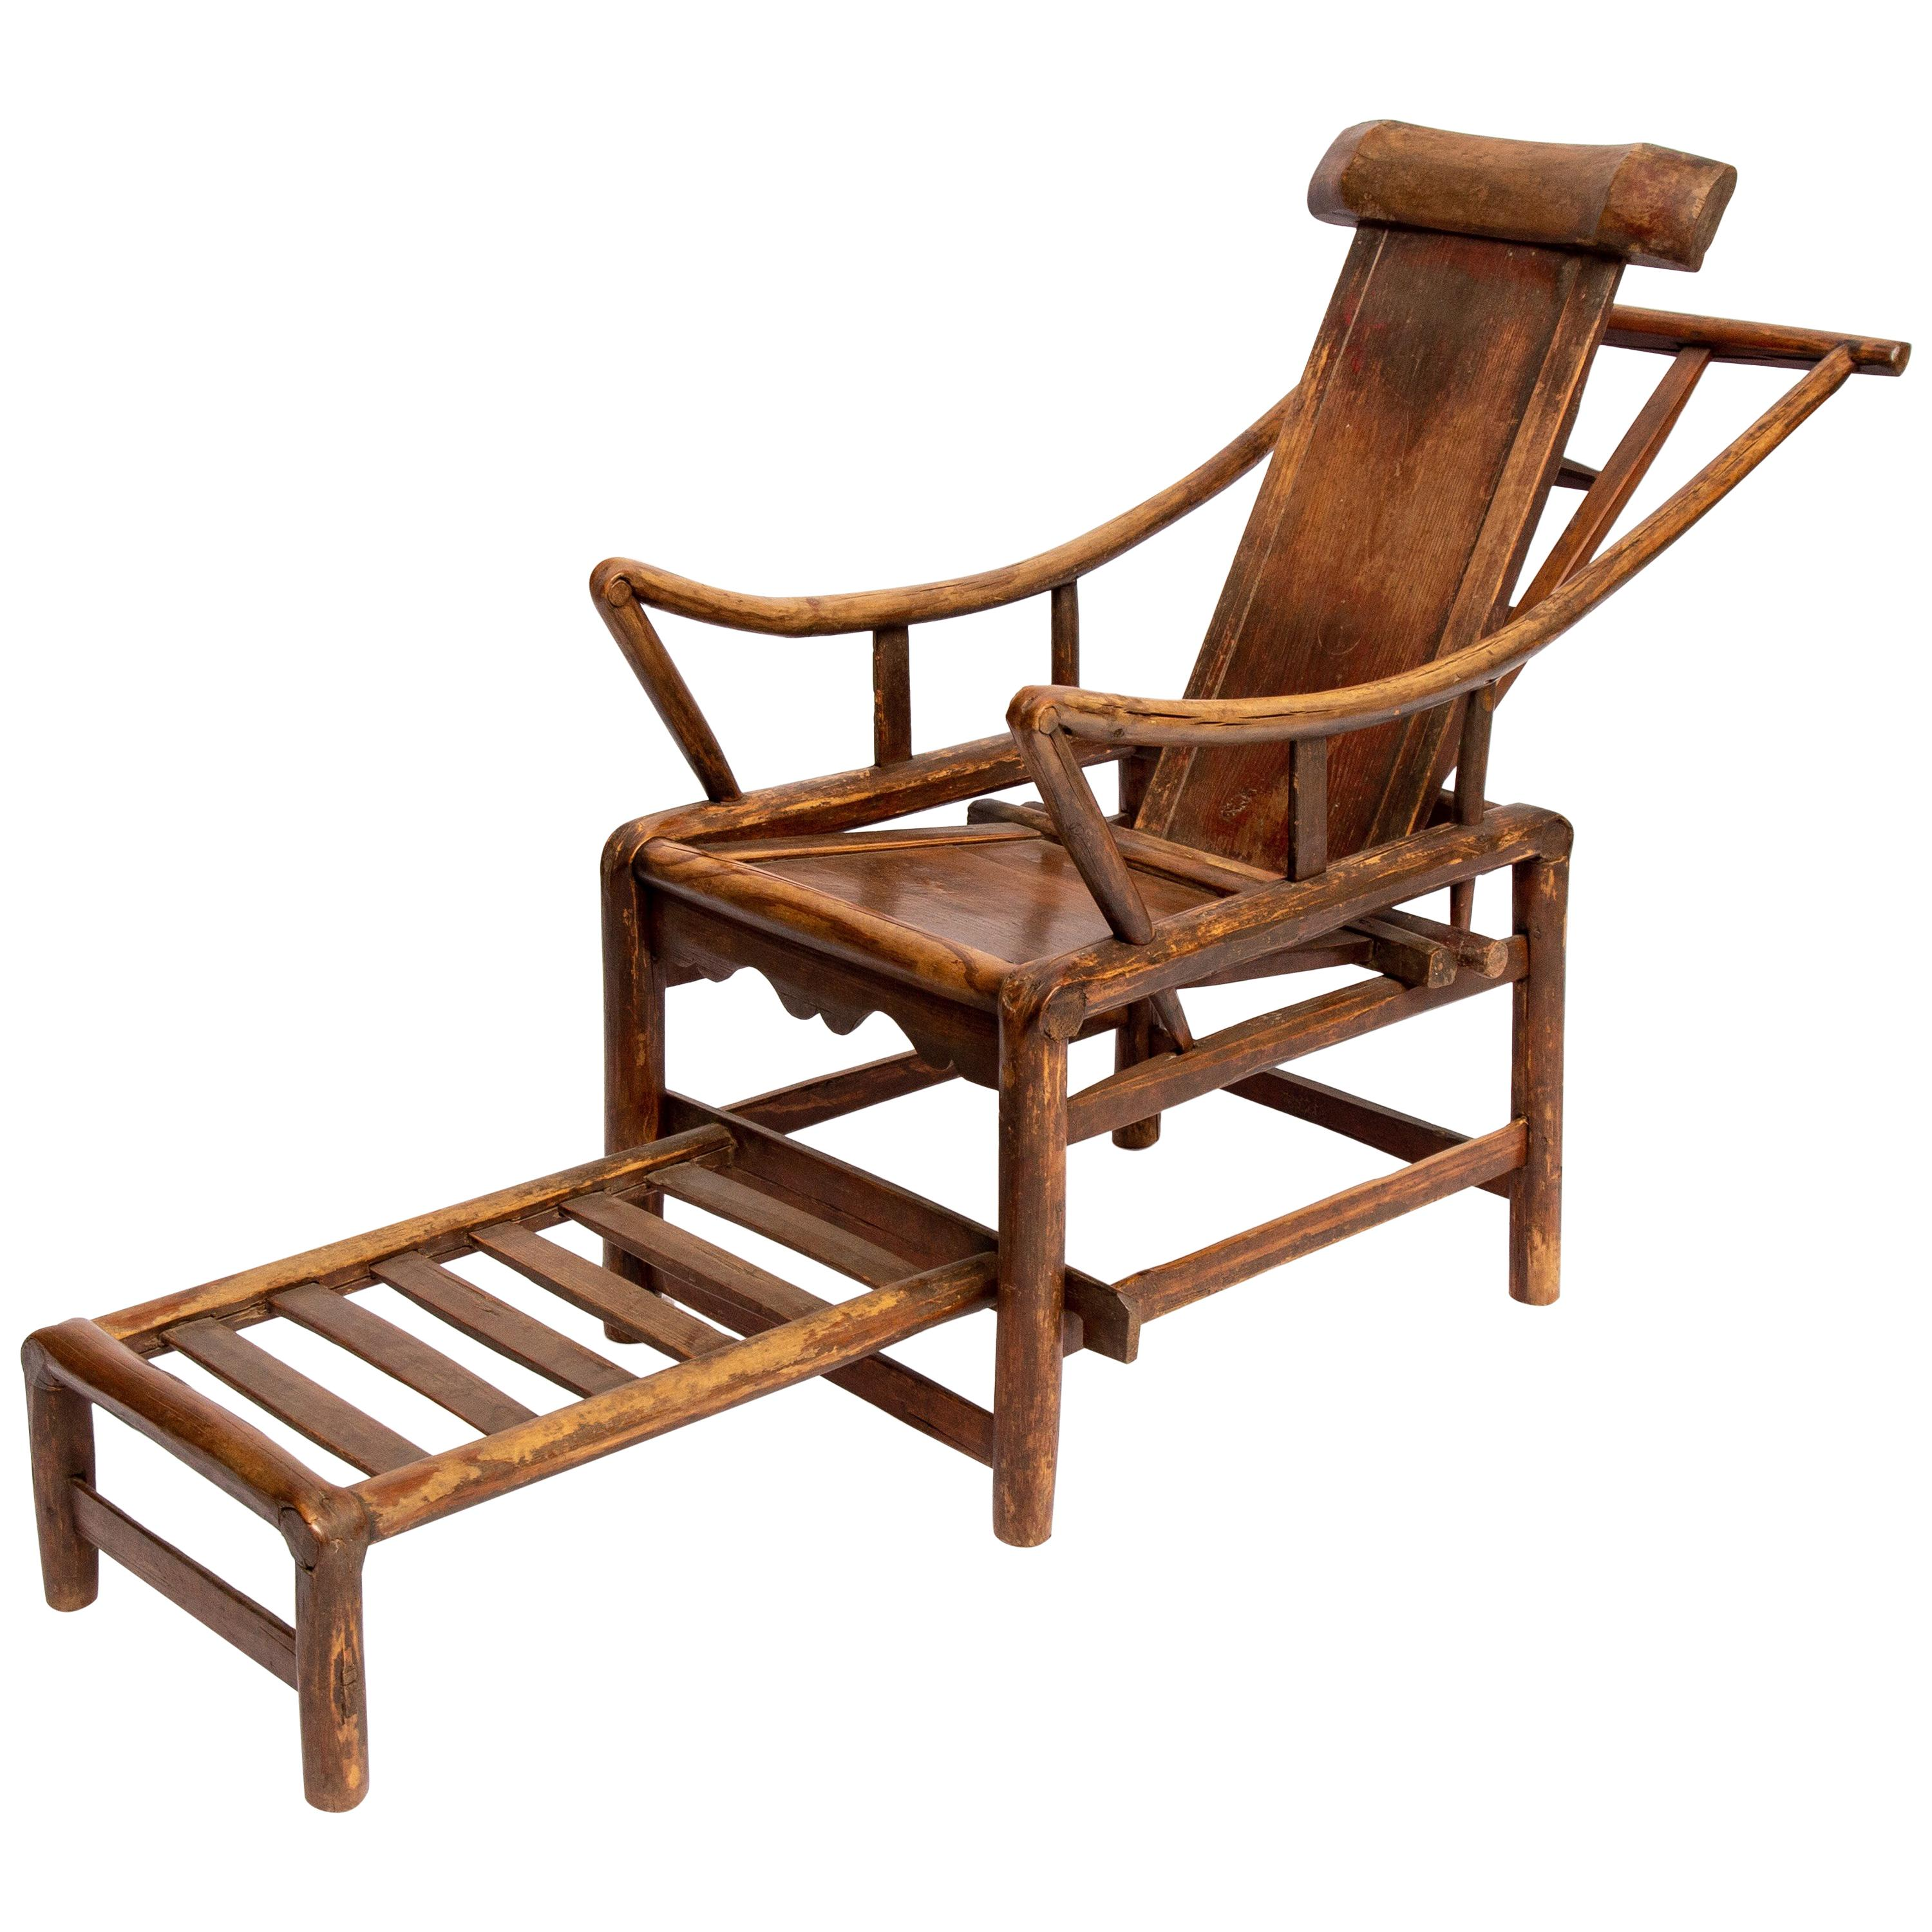 wooden lounge chair wheelchair uae chinese 19th century handcrafted adjustable yoke back 1850s for sale